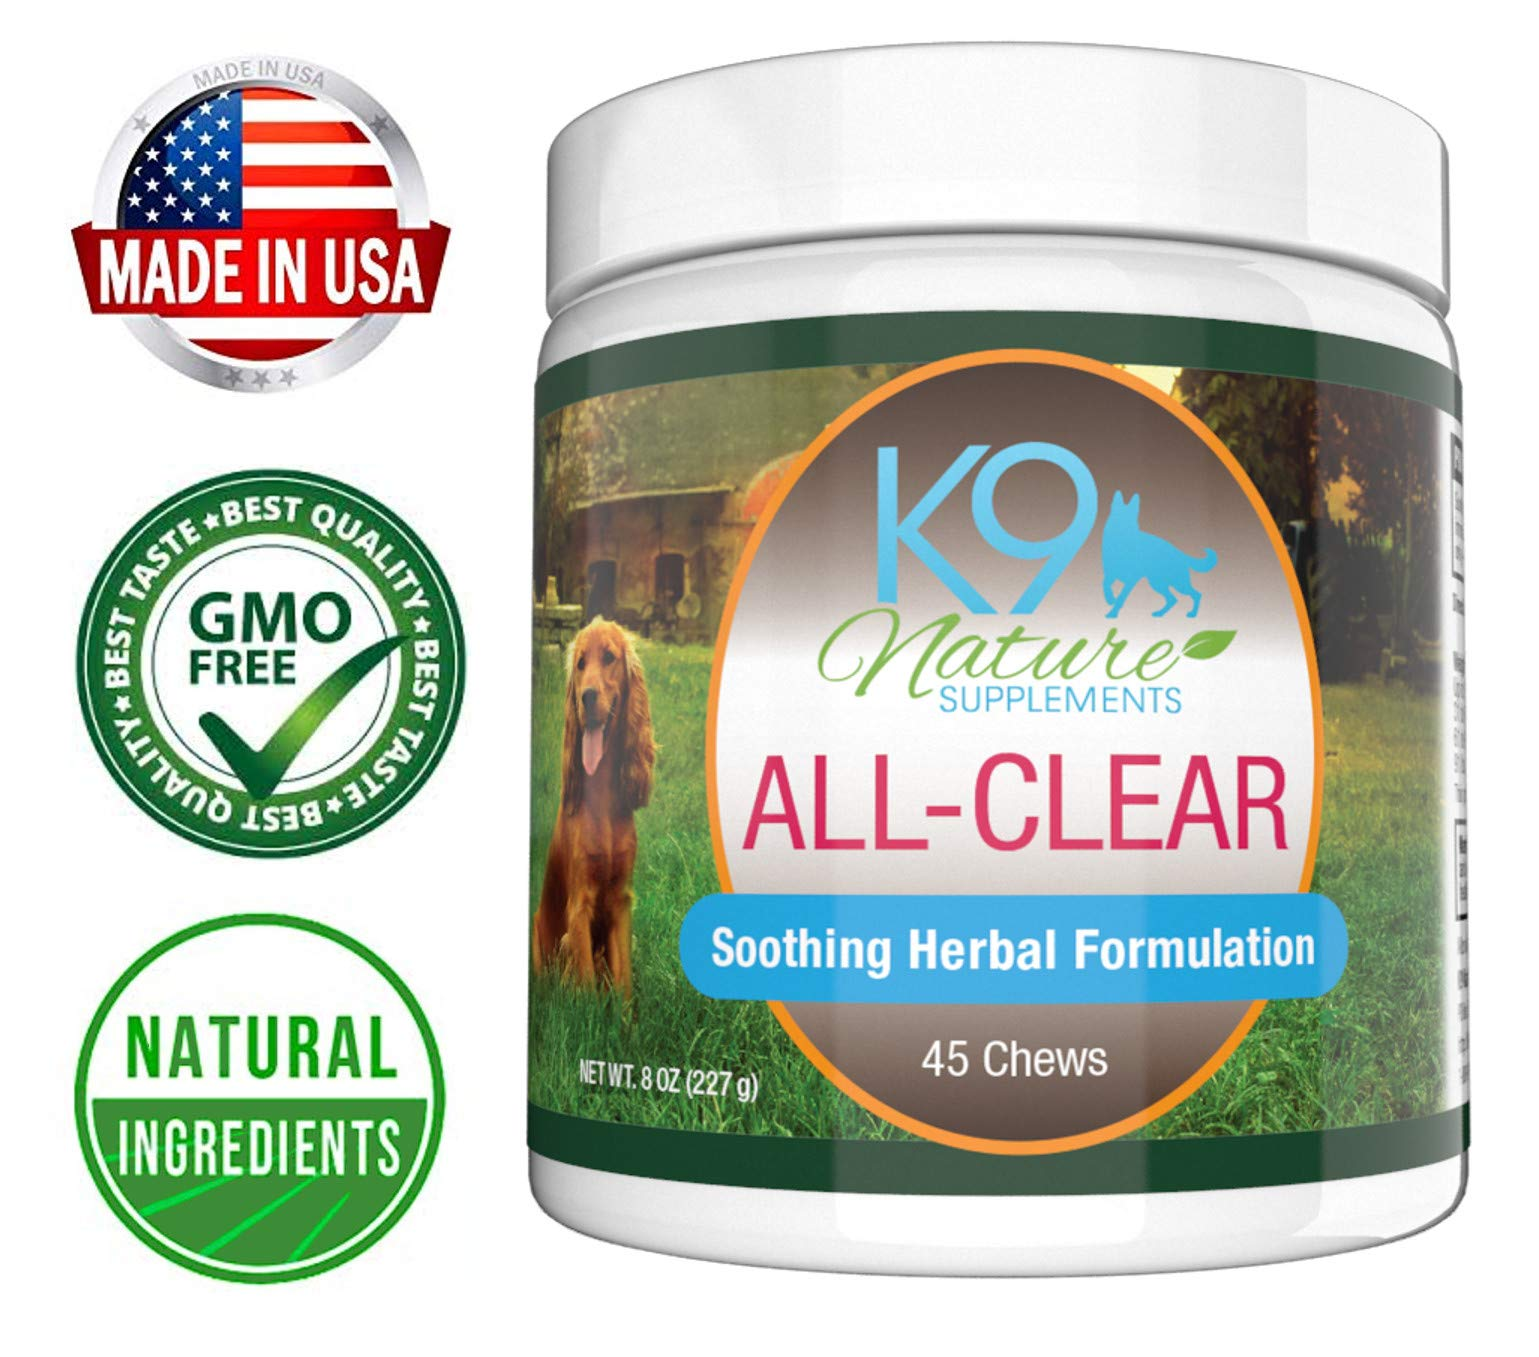 Dog Allergy Supplement All-Clear Herbal Anti Itch Treats Provide Natural Relief from Seasonal Allergies Reducing Constant Scratching & Other Symptoms in Dogs 45 Tasty Soft Chews by K9 Nature Supplements